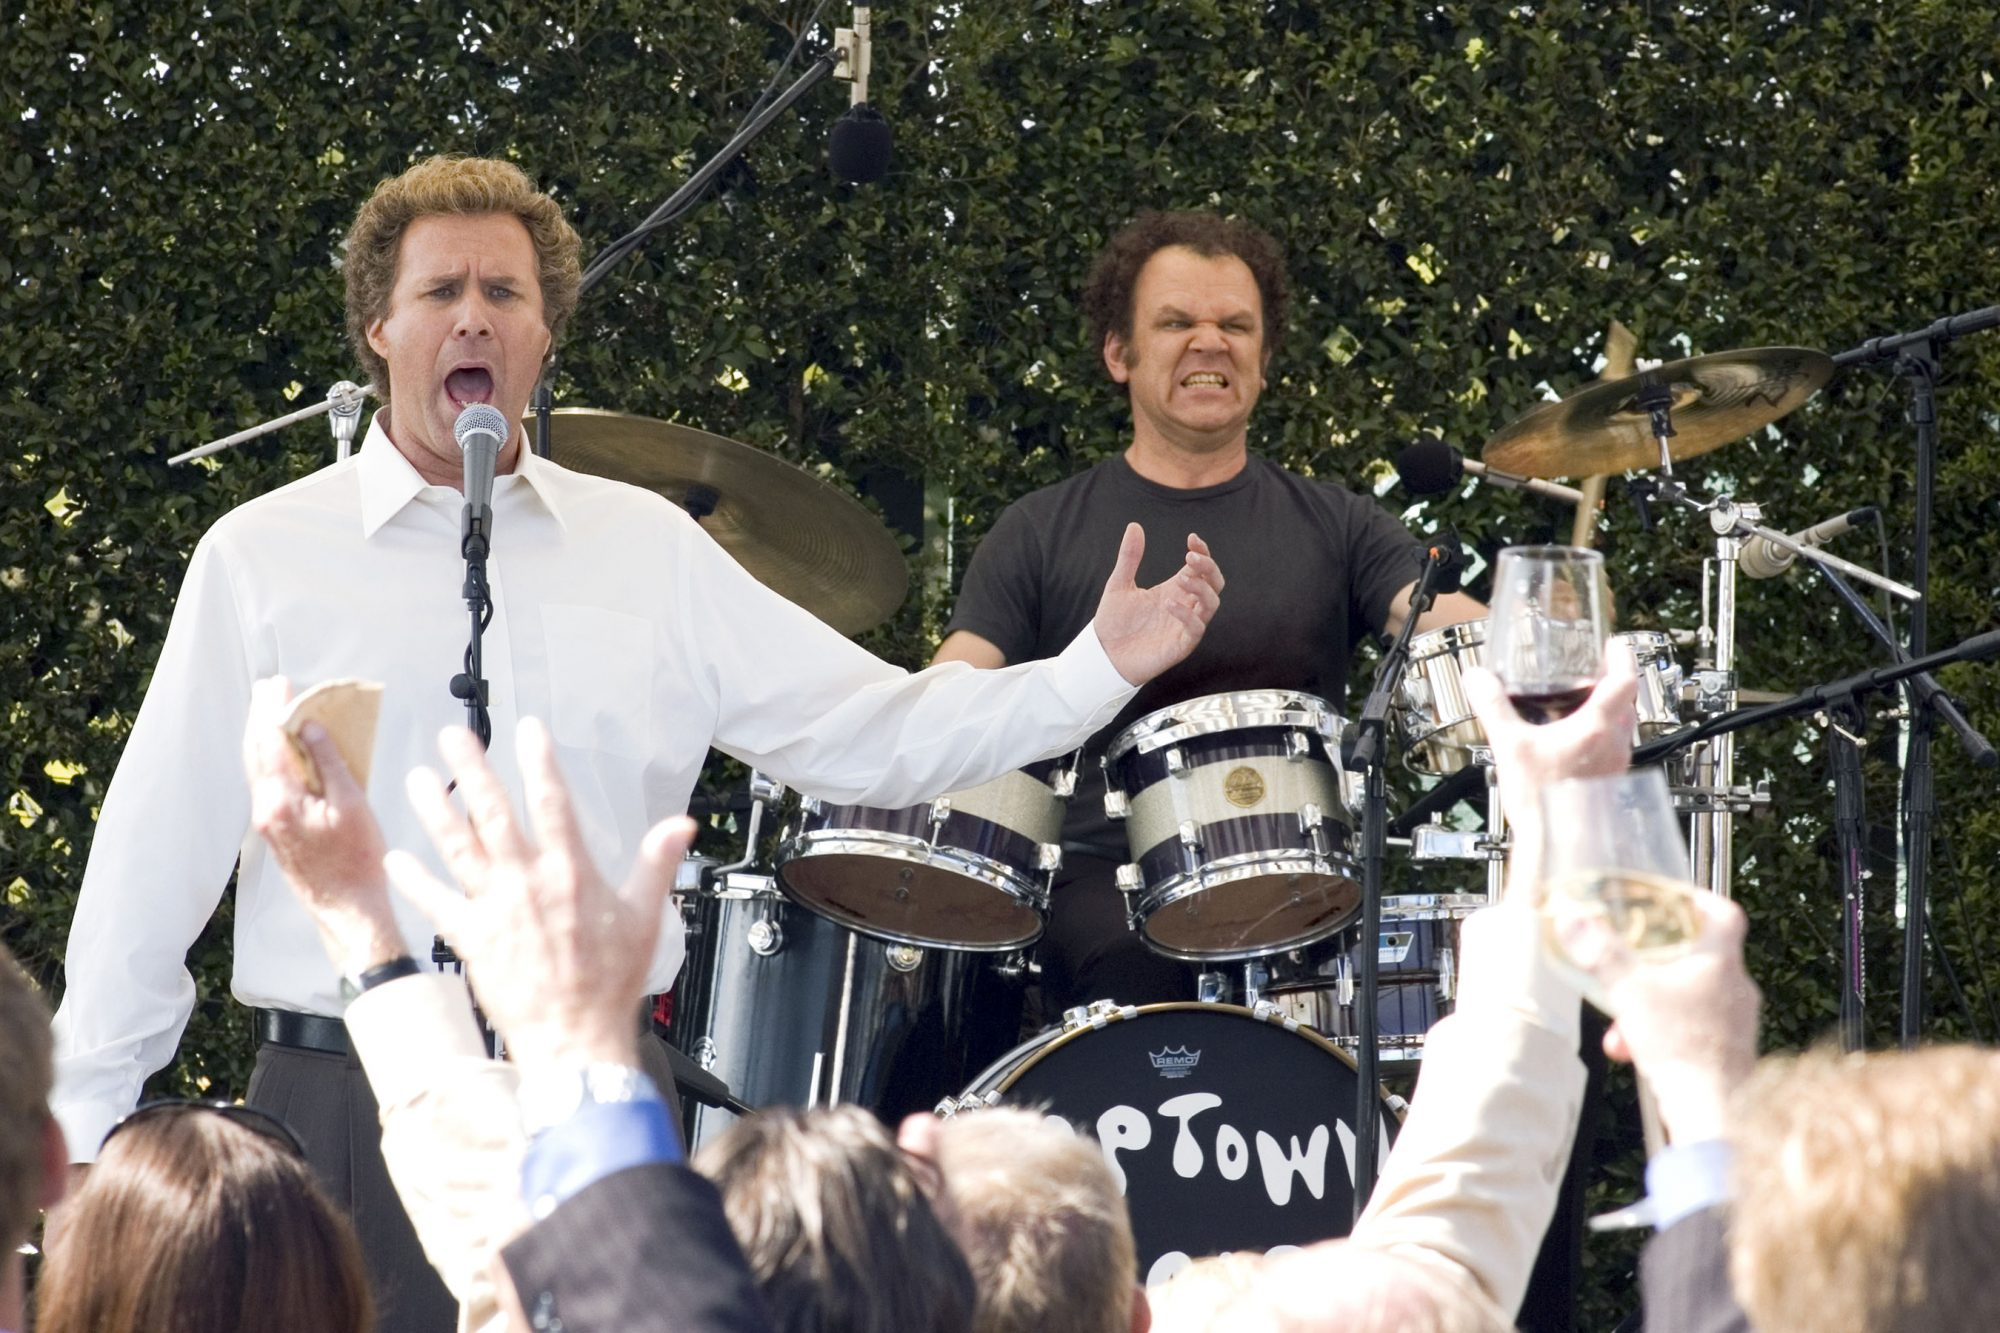 STEP BROTHERS, from left: Will Ferrell, John C. Reilly, 2008. ©Columbia Pictures/courtesy Everett Co